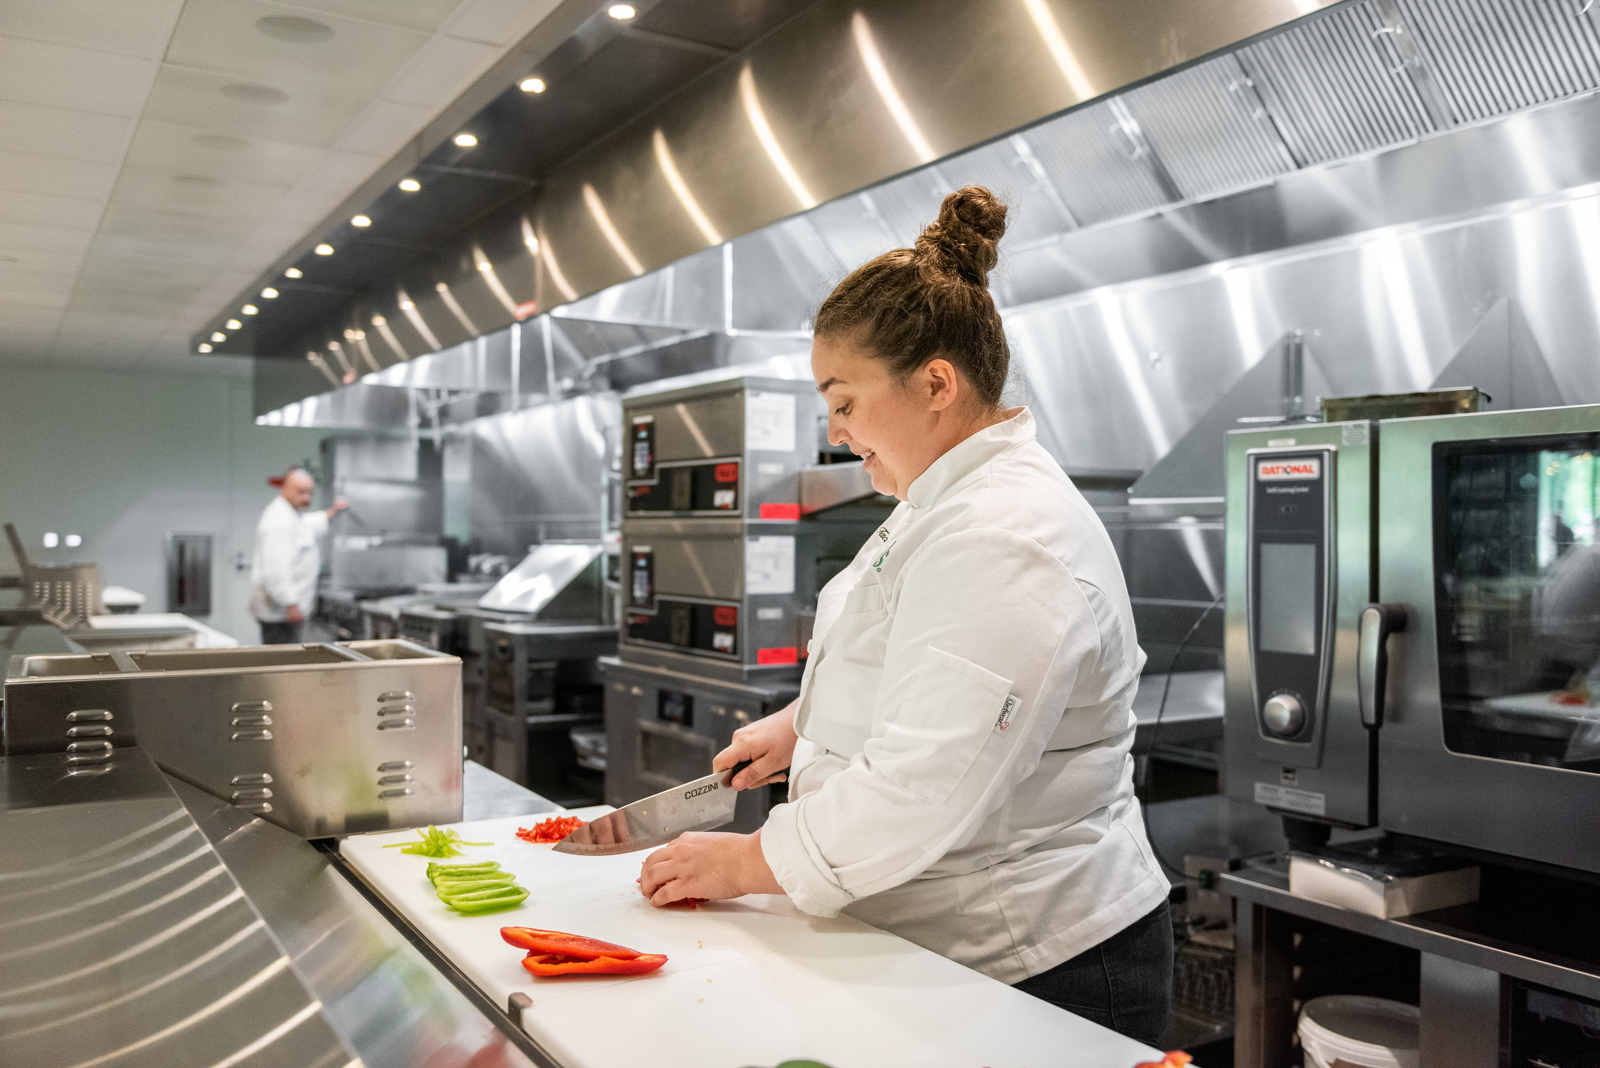 Female Chili's chef cutting vegetables in gleaming, clean stainless-steel Chili's kitchen